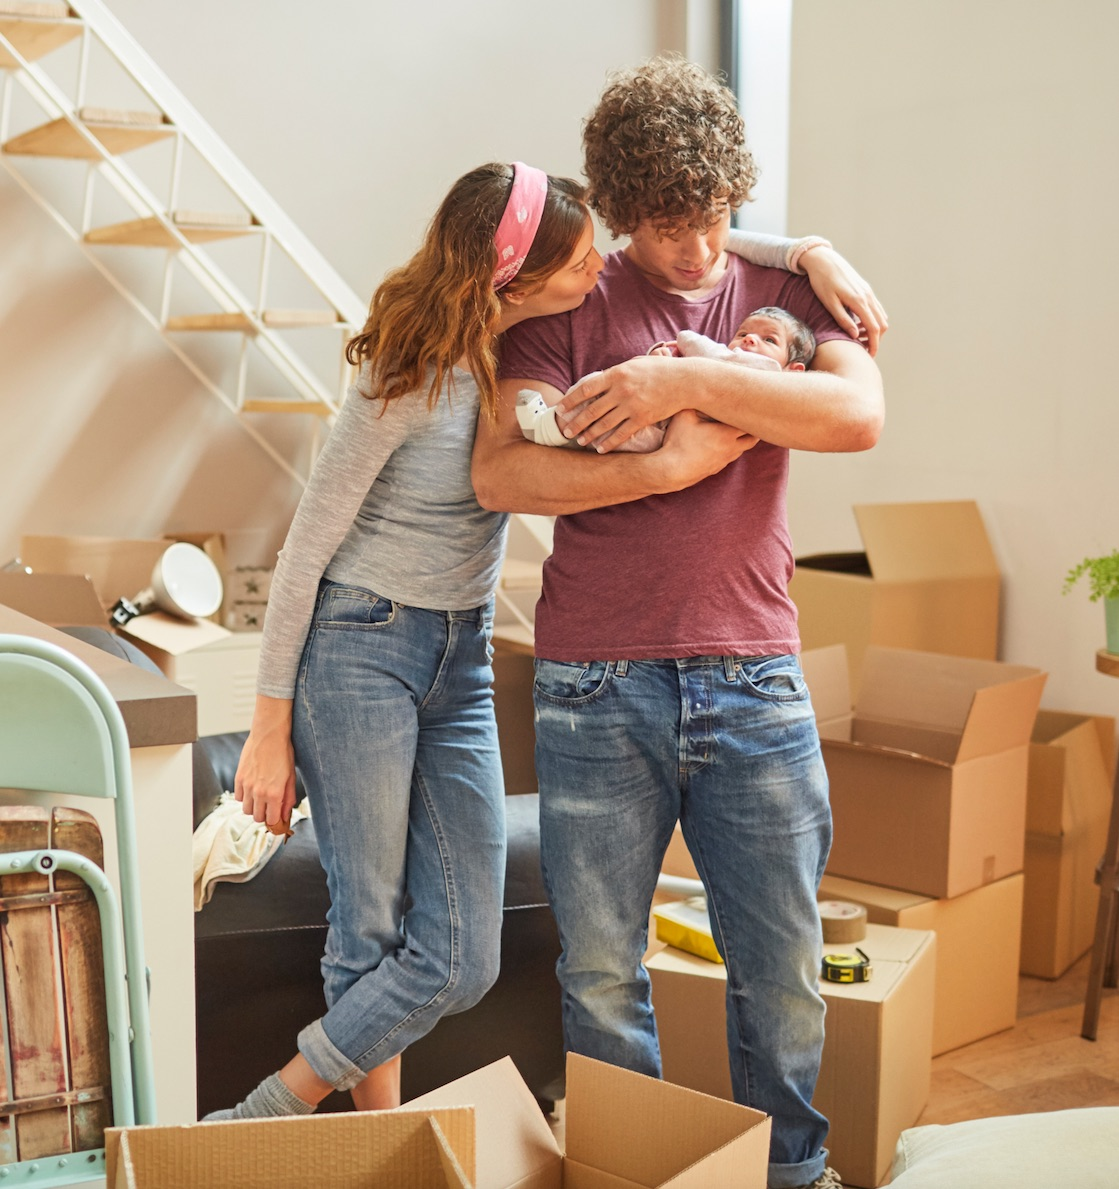 Moving-home-new-beginnings_-Couple-with-baby_-621350462_3500x2333_jpeg.jpg